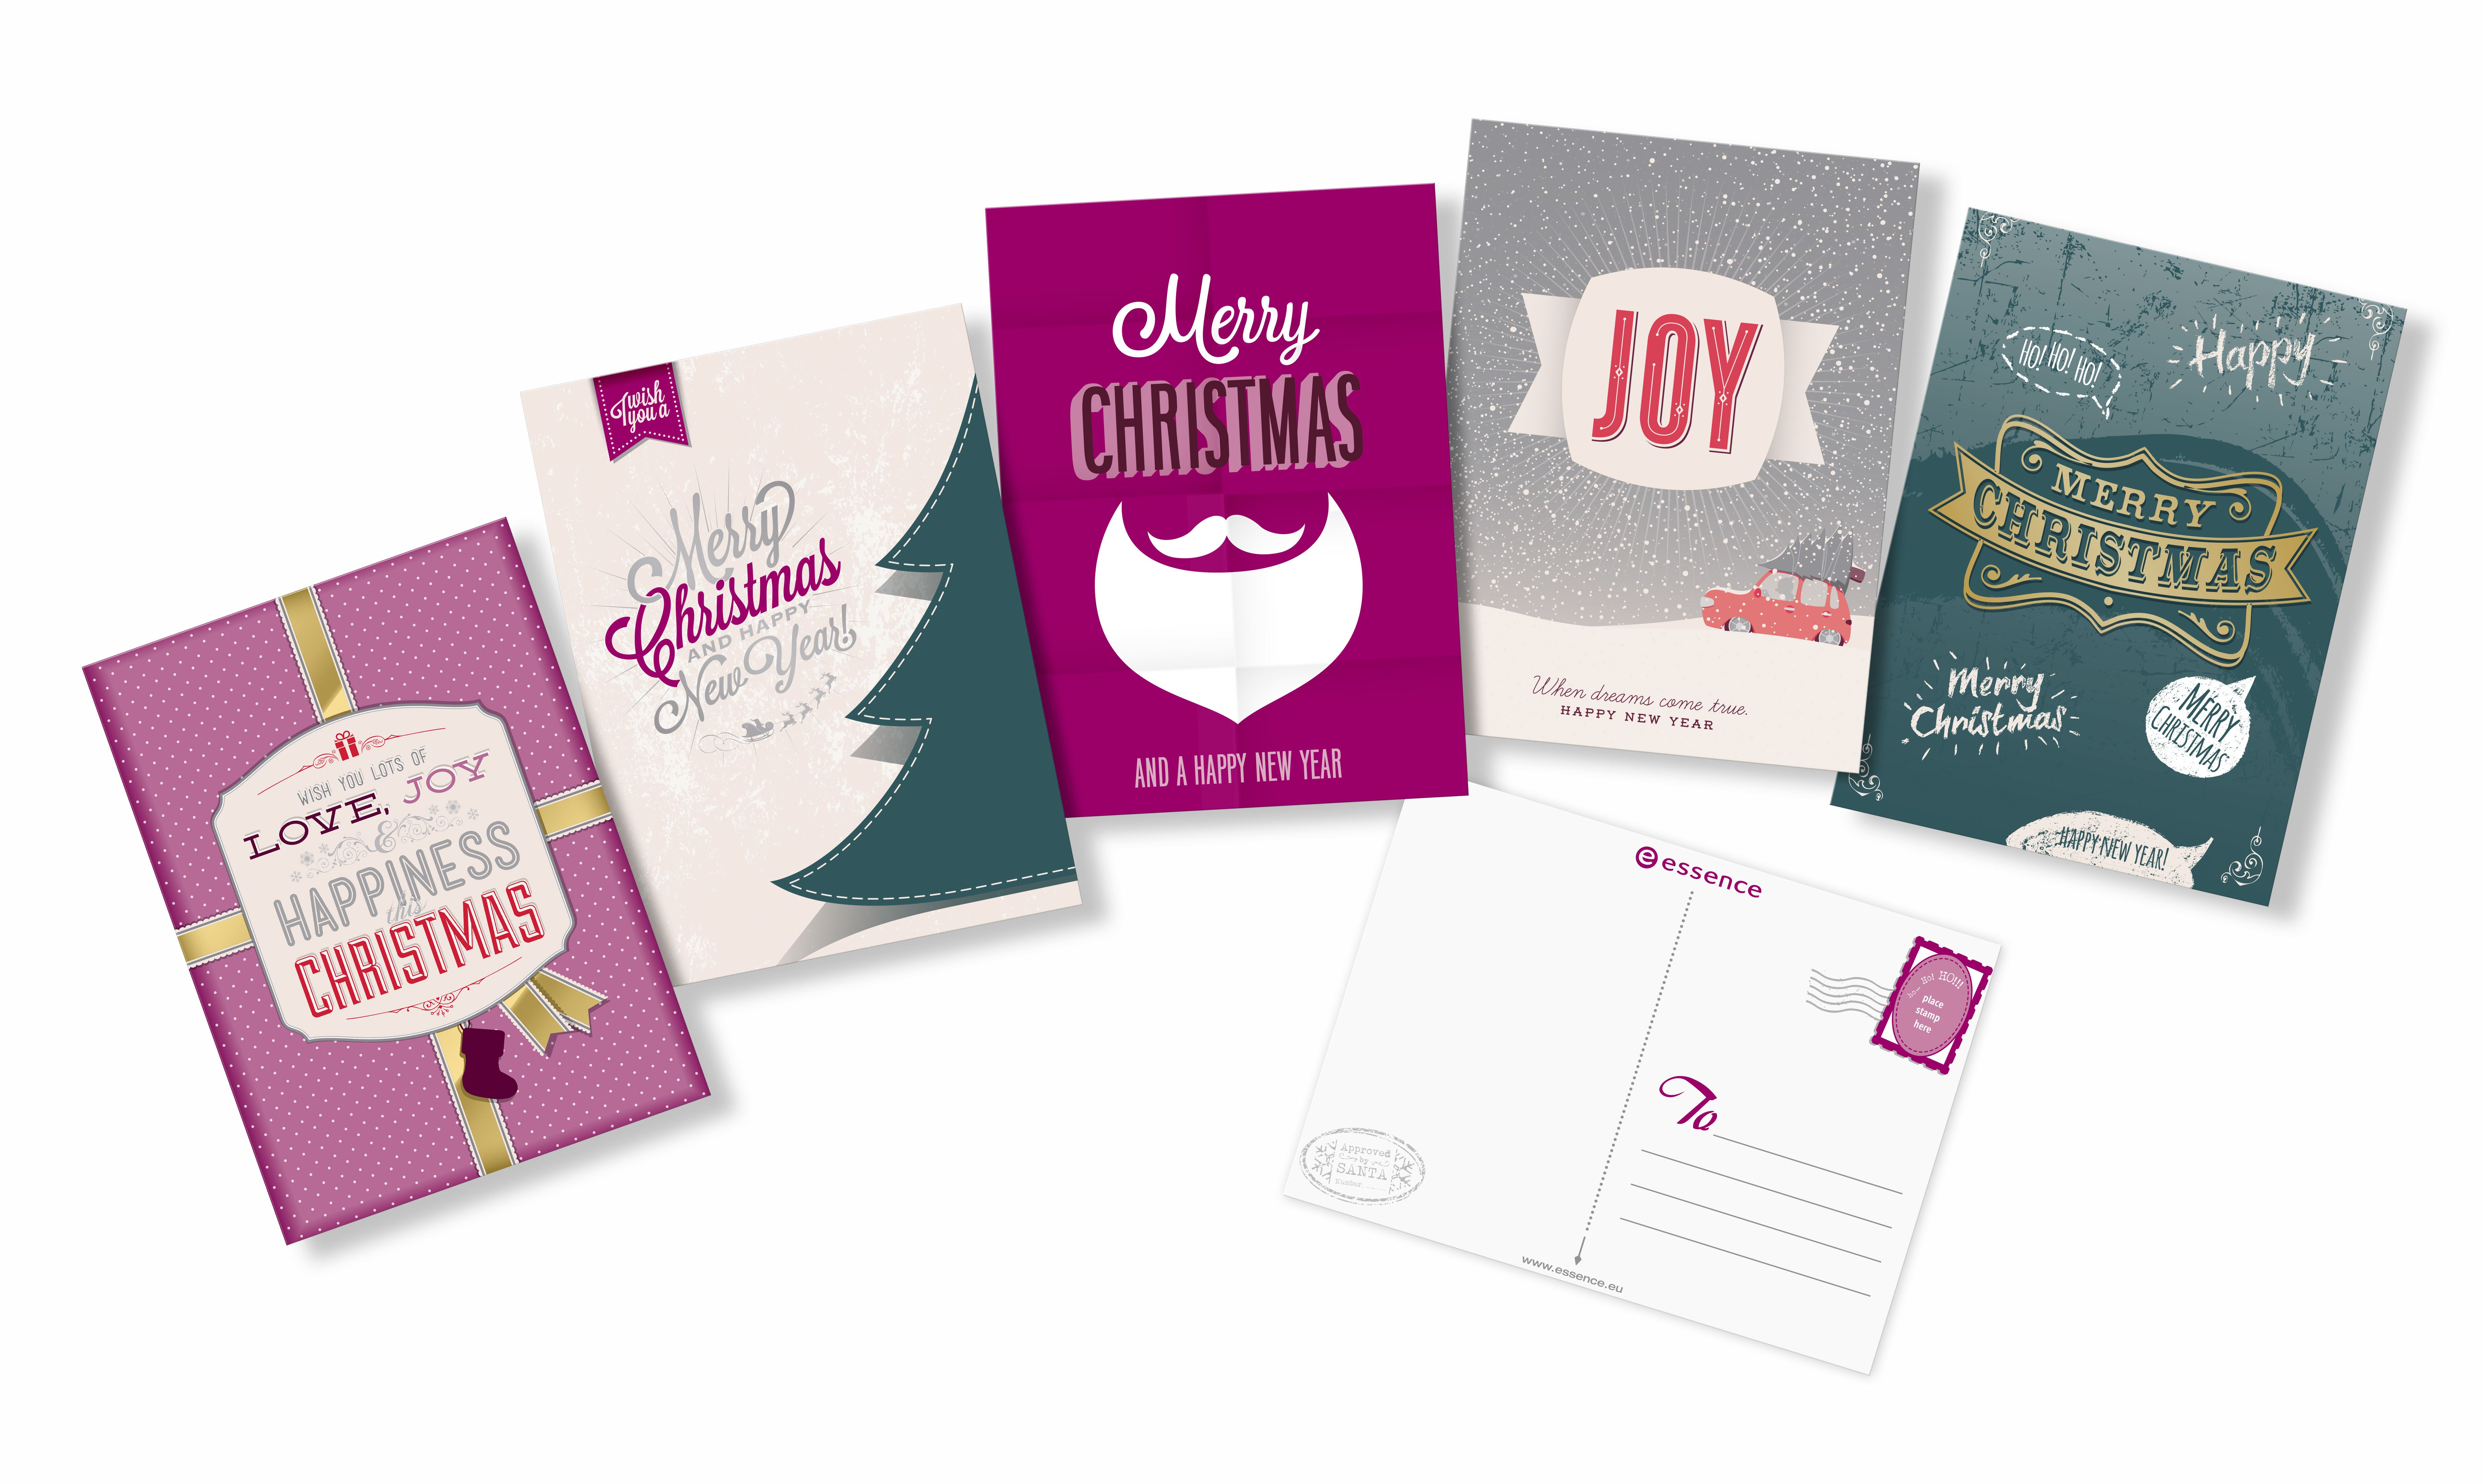 essence come to town Greeting Cards